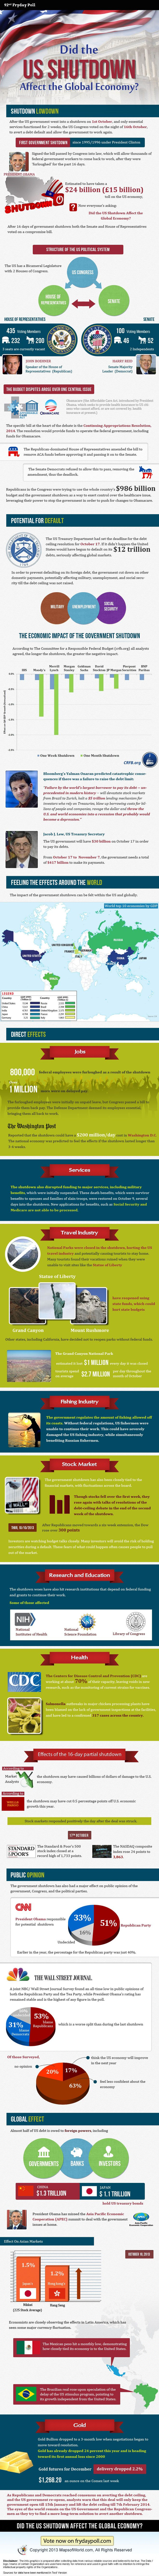 An essential Info-graphic about the impact of U.S shutdown. Learn about Obamacare, the US politics, debt ceiling, and potential for default. Find out about the impact in United States and around the world and the public opinion around it.